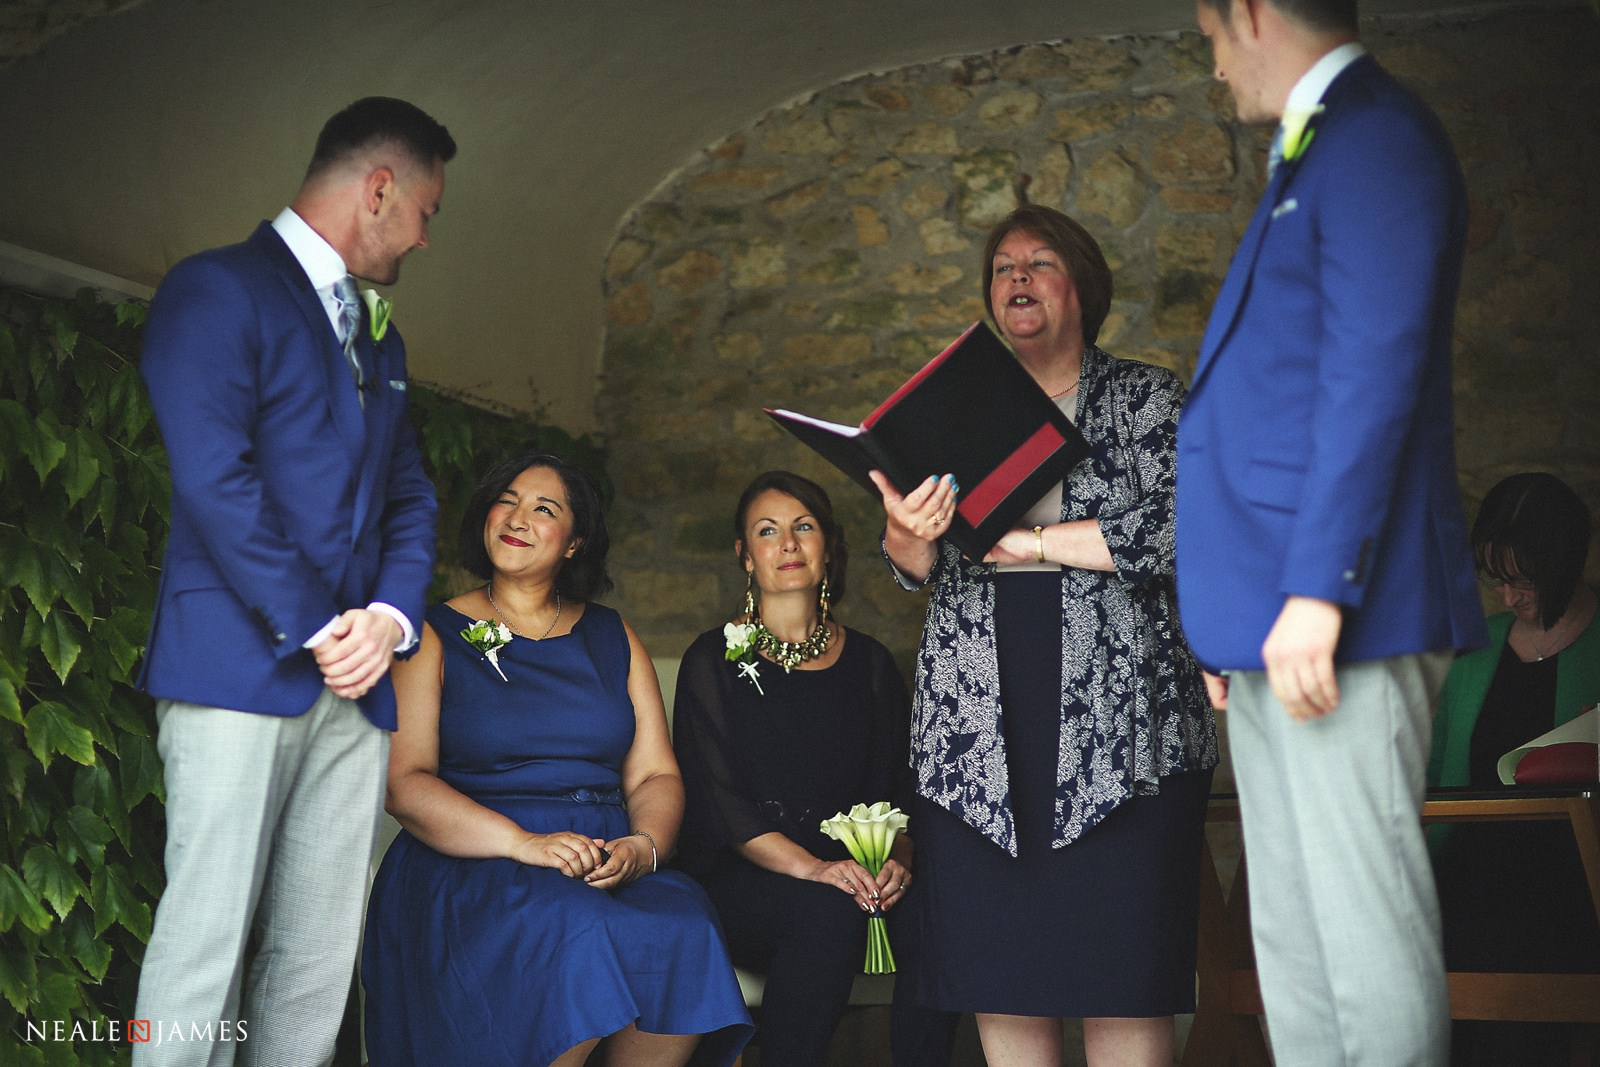 Outdoor ceremony taking place at Notley Abbey in Thame